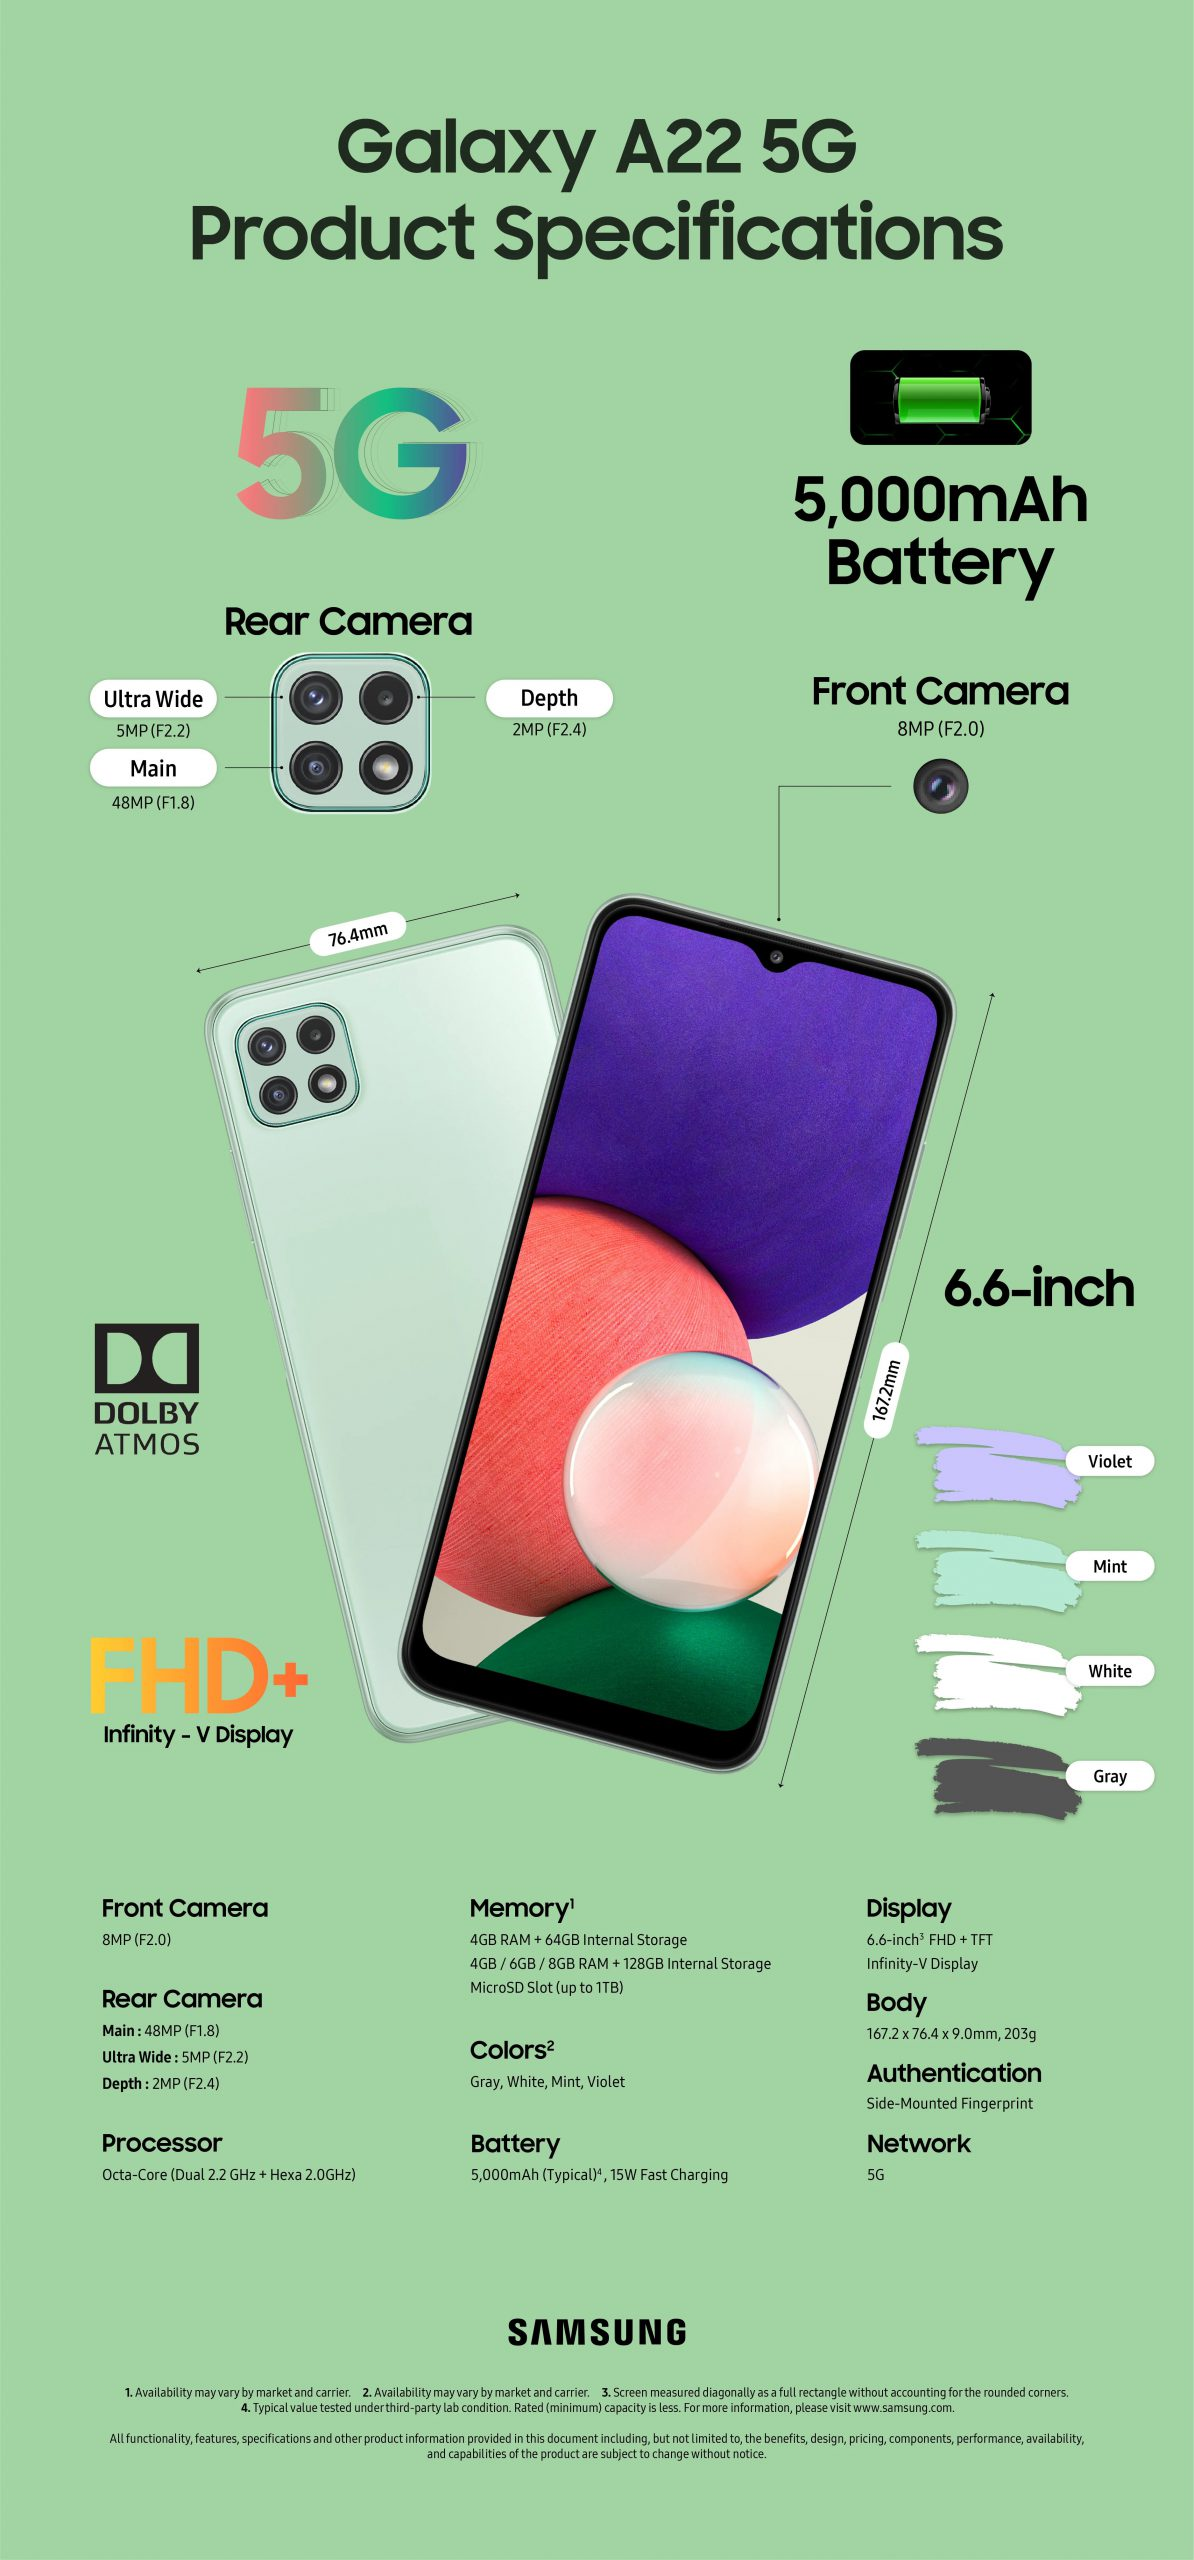 Samsung Galaxy A22 5G Specifications Infographic scaled